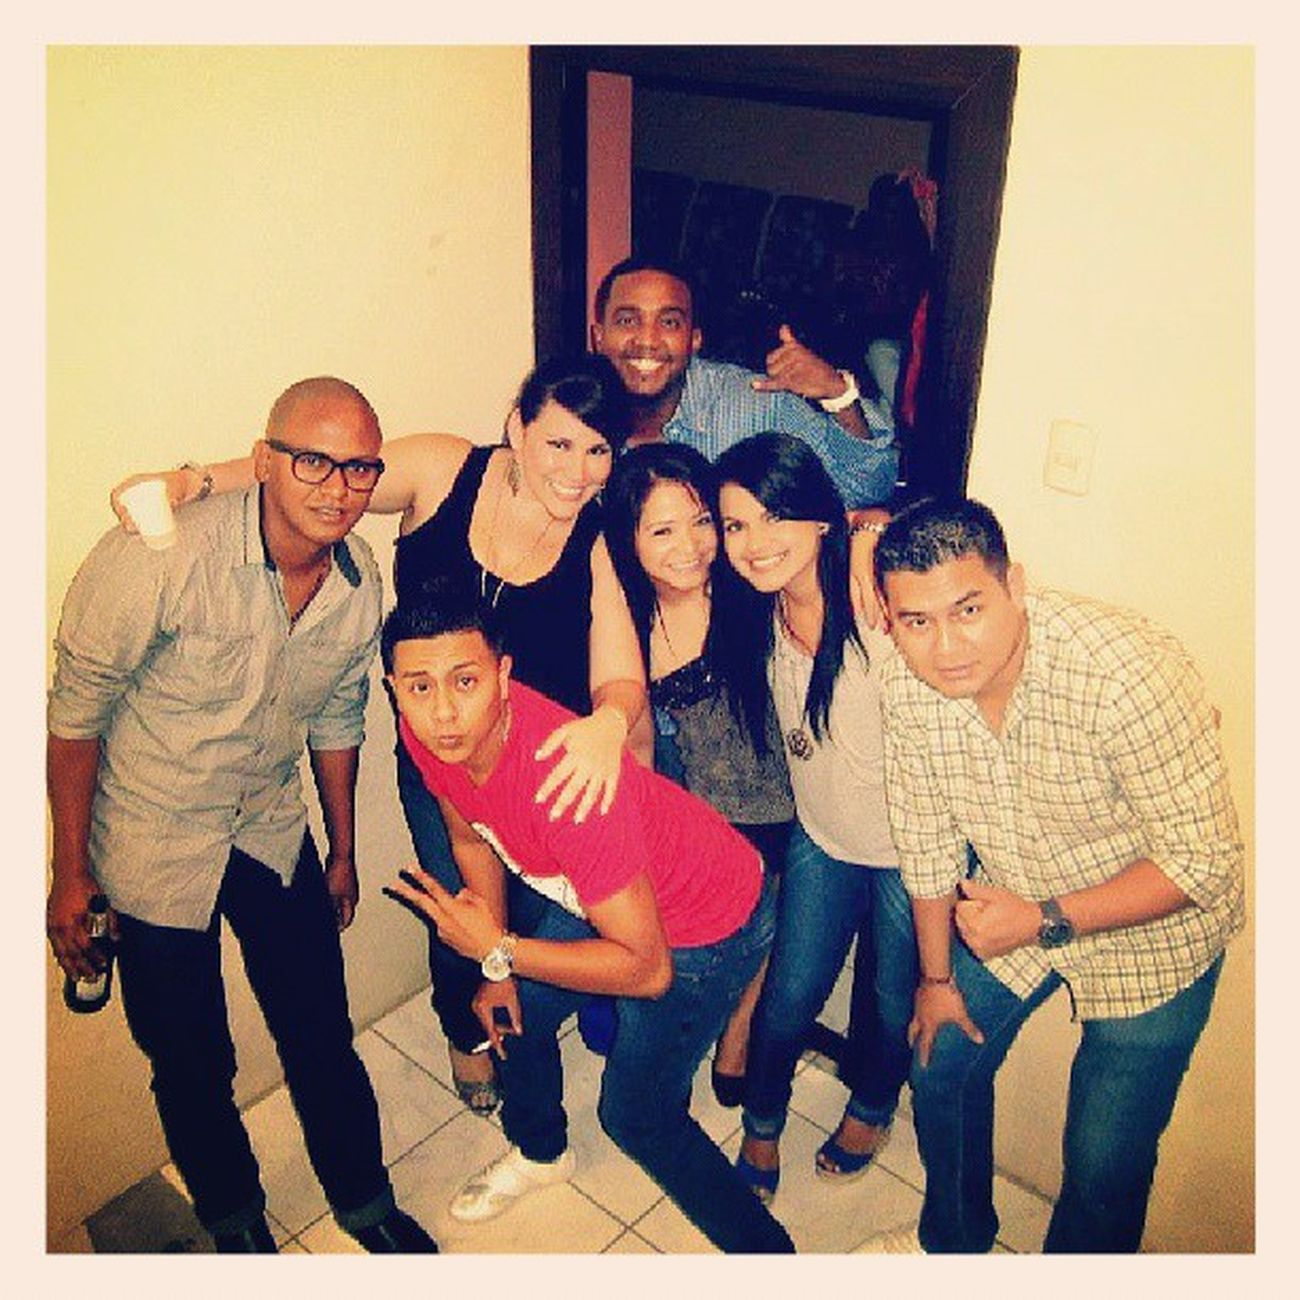 Bday Morefriends Cebiche lollll